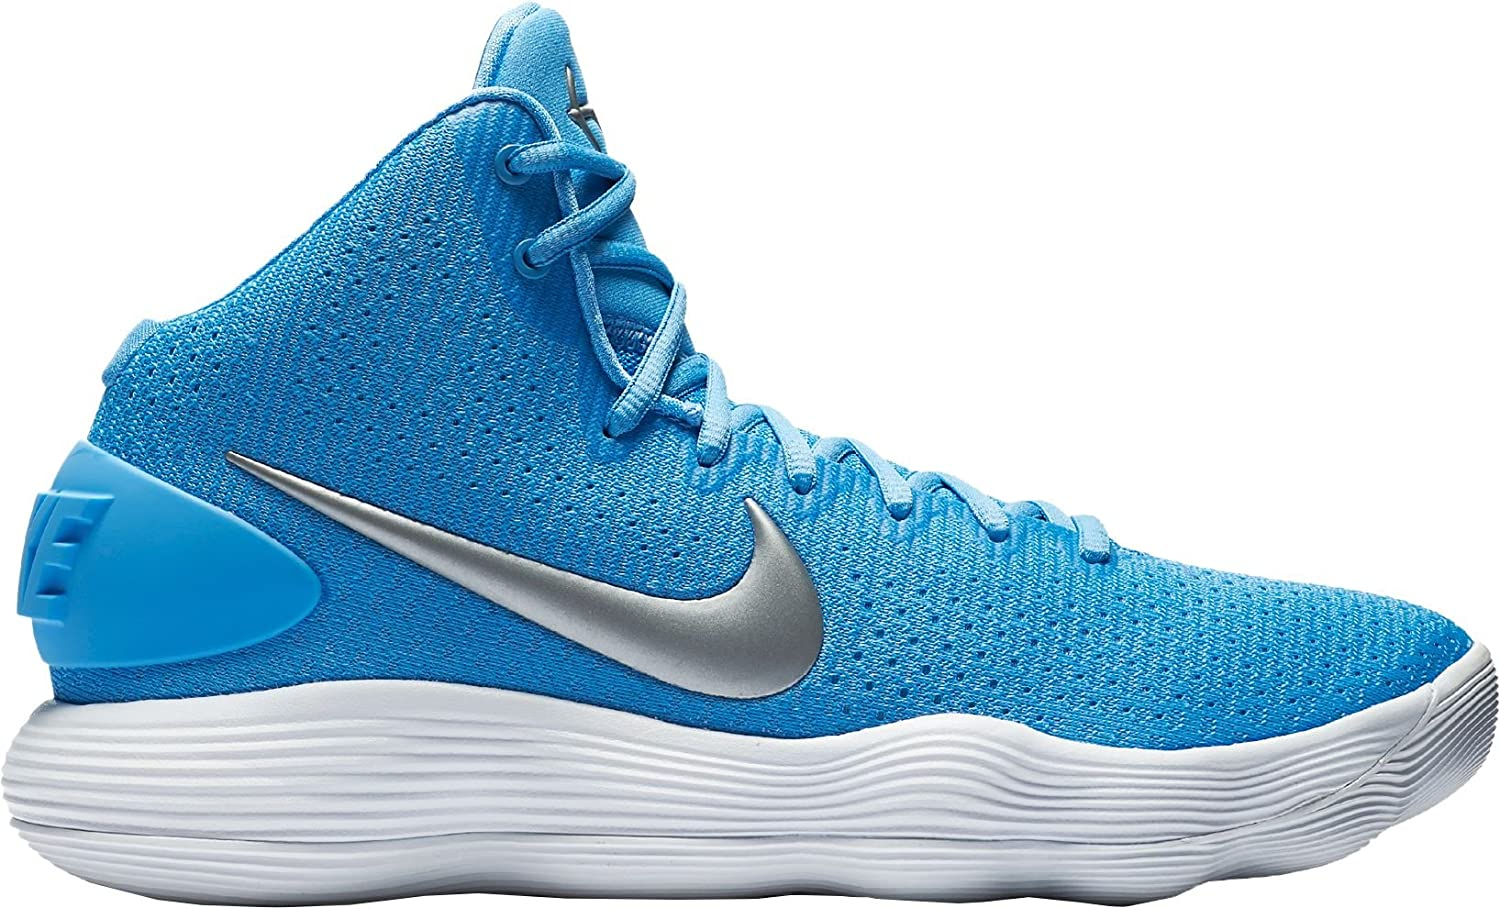 71b42d1af5cf Amazon.com  Nike Men s React Hyperdunk 2017 Basketball Shoes (University  Blue Grey